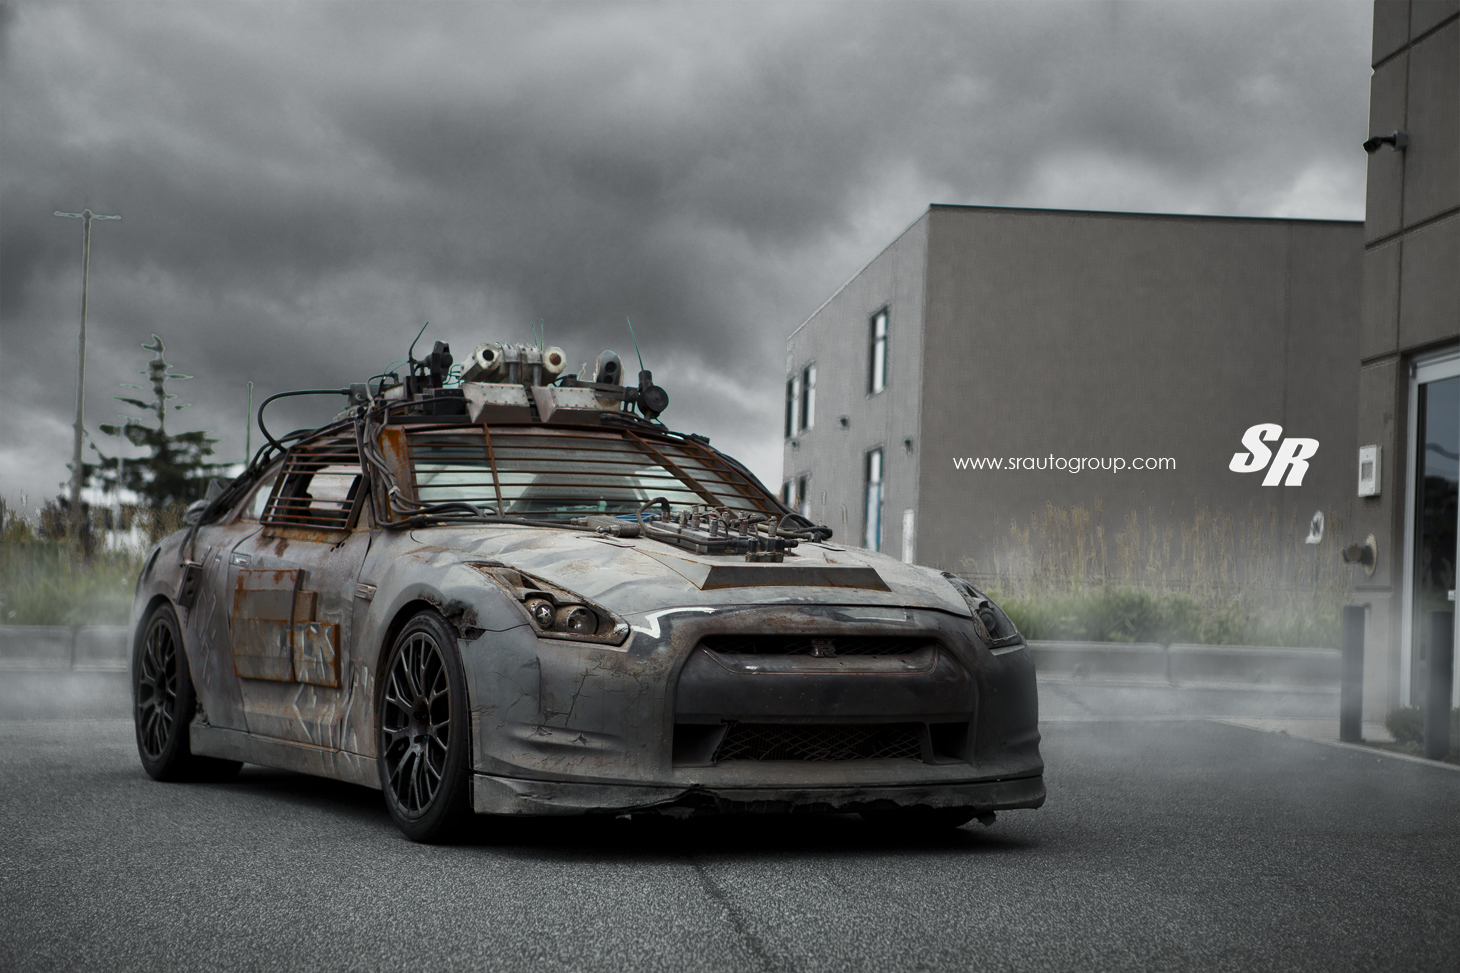 2154 nissan gt-r from elysium gets custom pur wheels